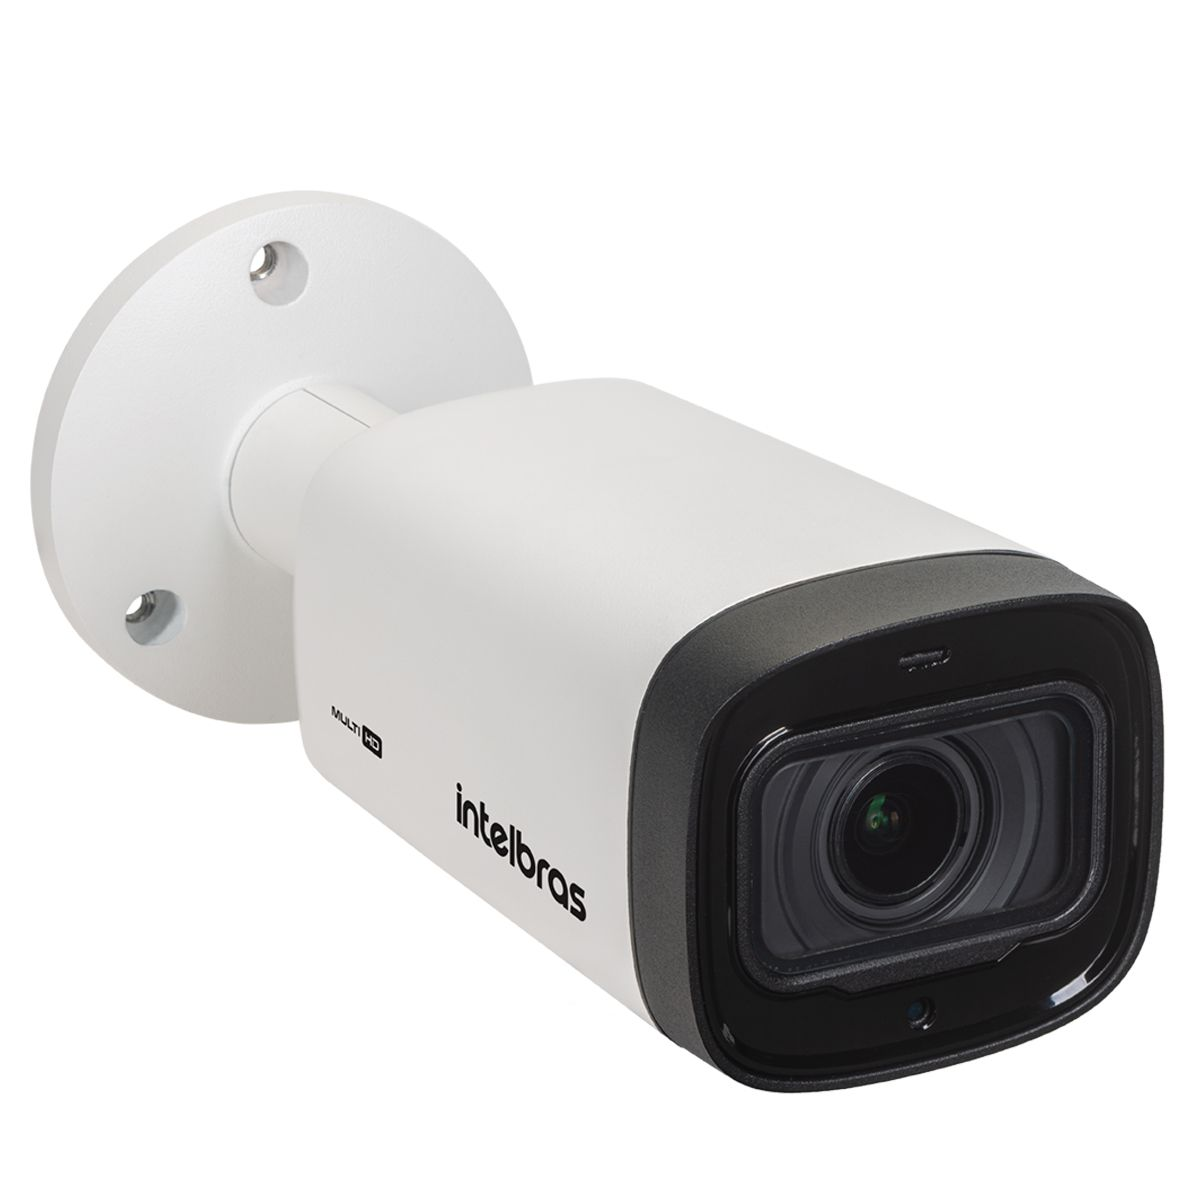 CAMERA HD 720P VARIFOCAL VHD 3140 INTELBRAS